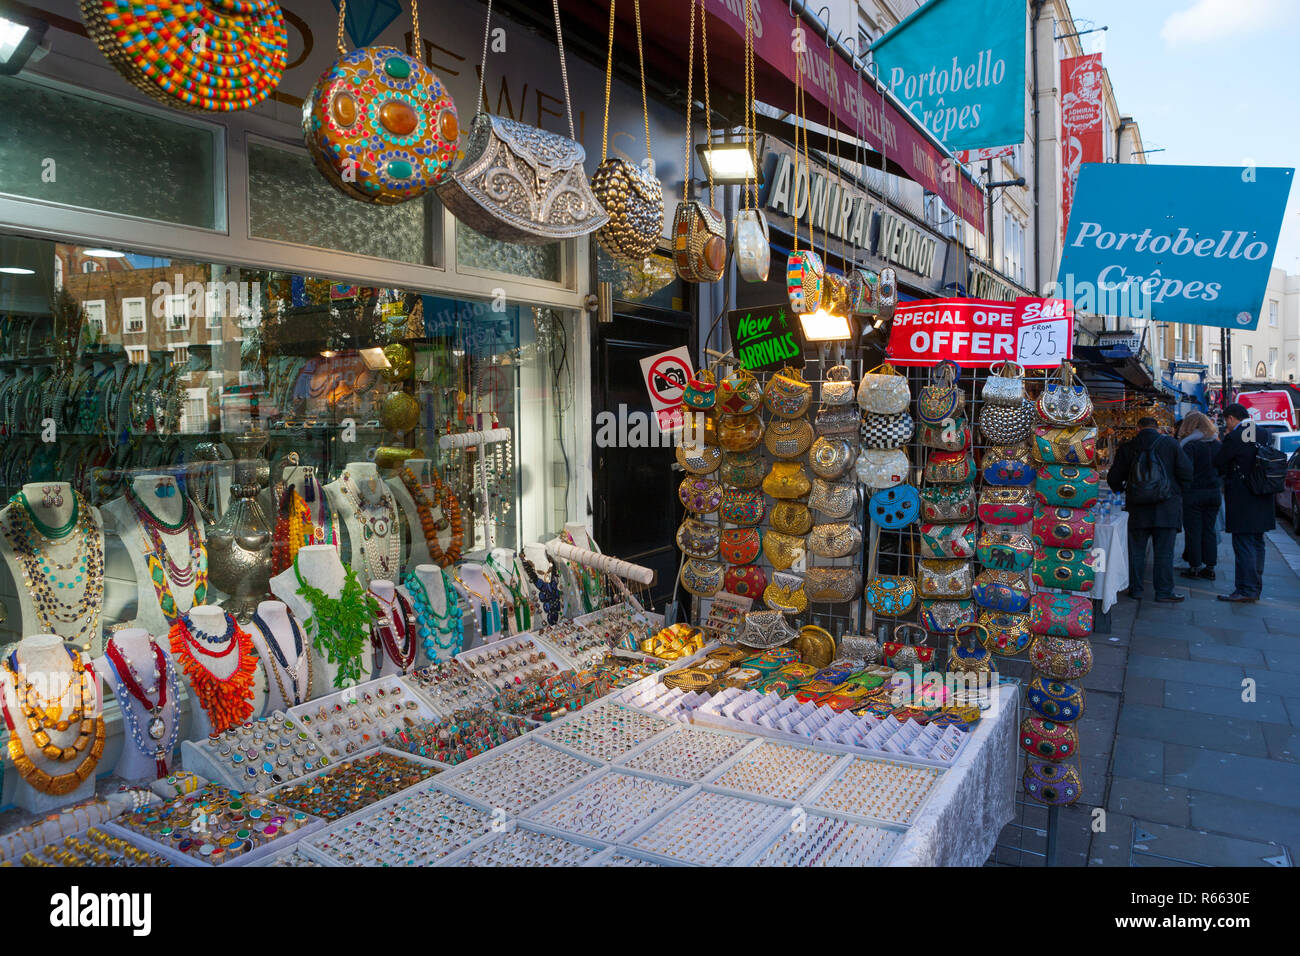 Almas Jewels, Portobello Road, Notting Hill, London - Stock Image